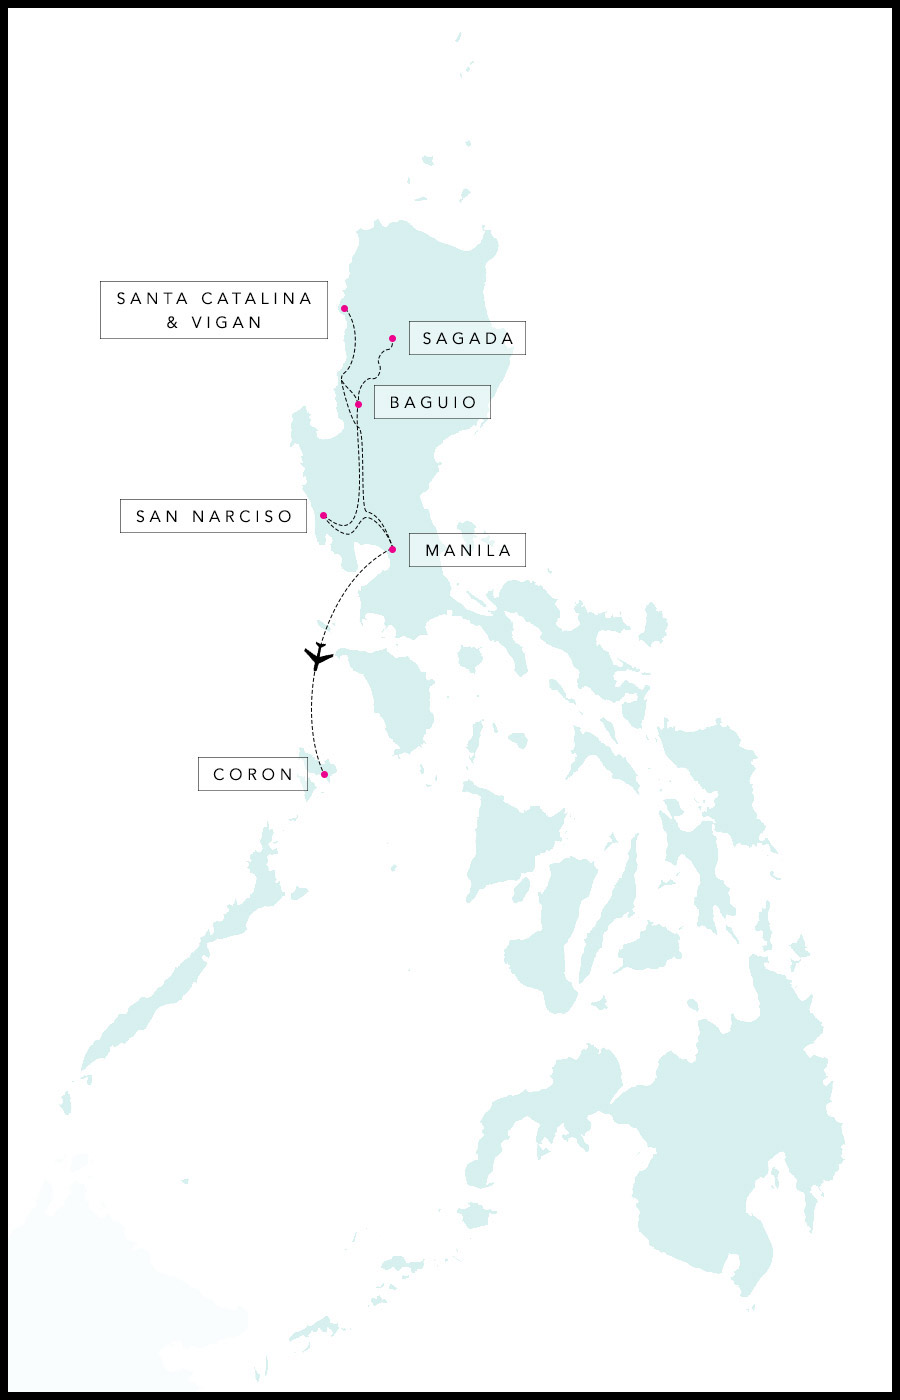 Alex & Madie's travel route in the Philippines.